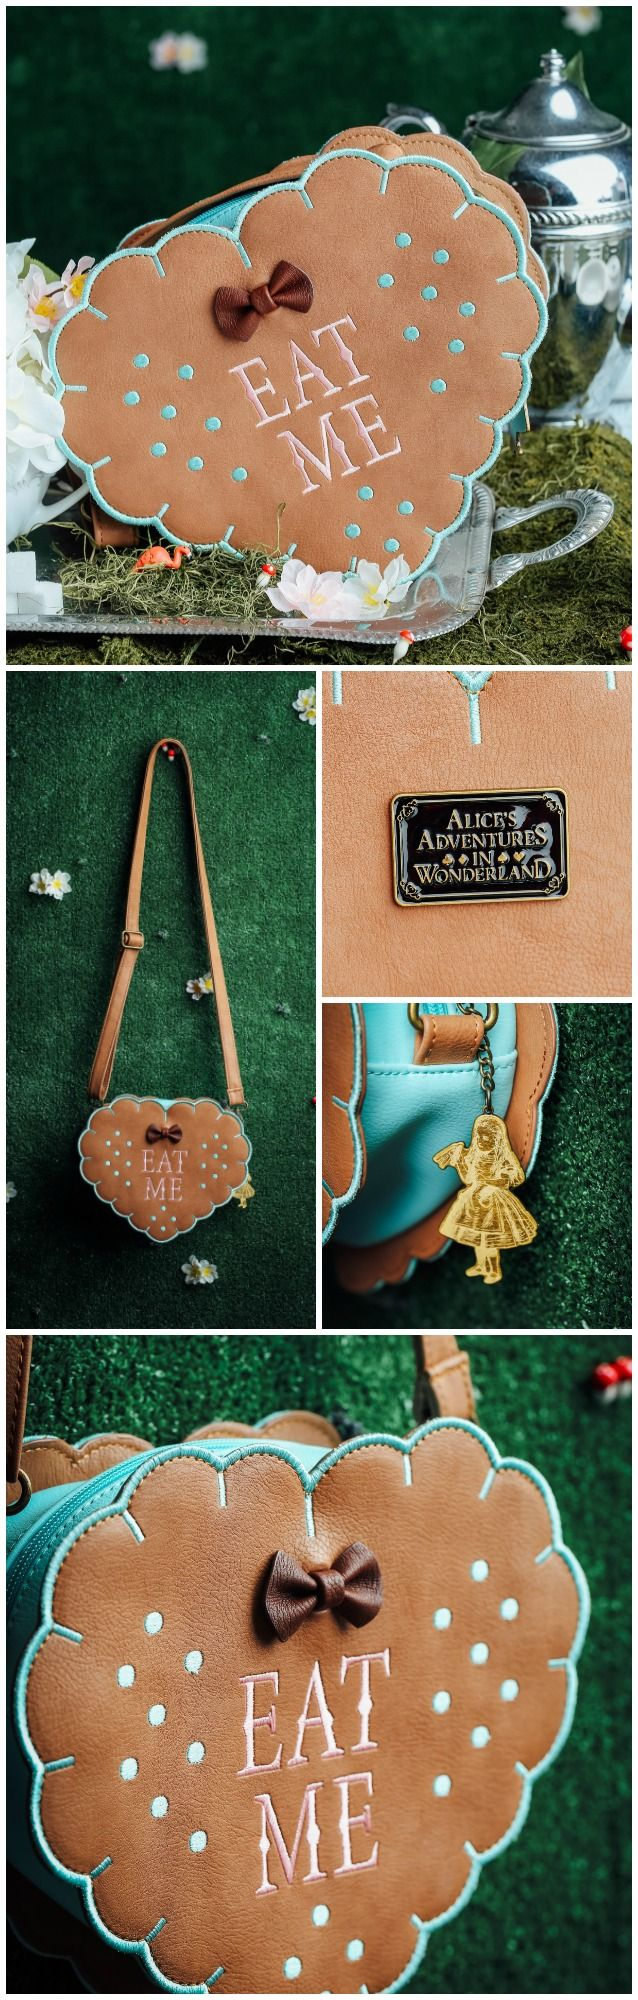 Exclusive Loungefly Alice in Wonderland purse - an Eat Me cookie bag has never looked so sweet. This is available for pre-order now, so be sure to gobble it up before they're all claimed! #kawaii